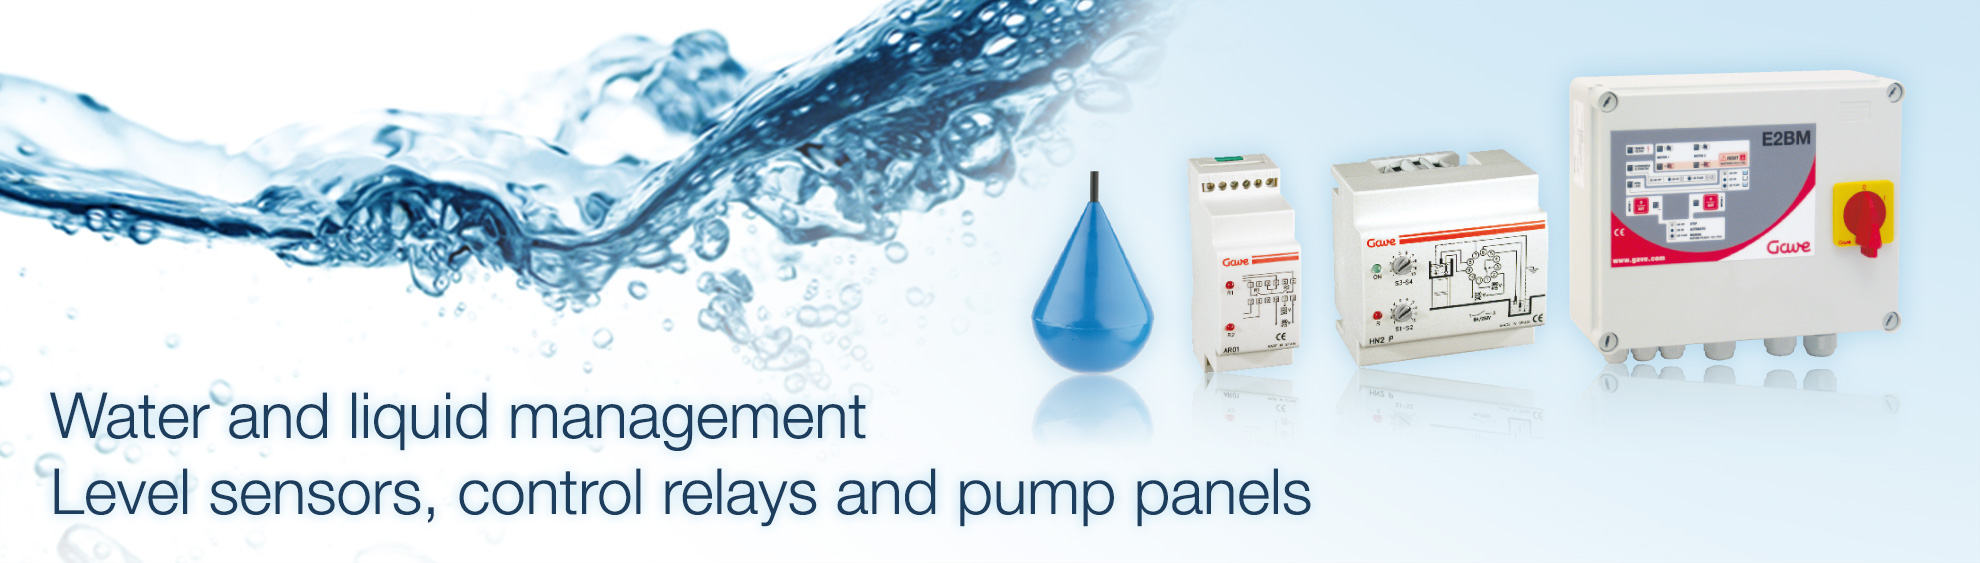 Water and liquid management. Level sensors, control relays and pump panels